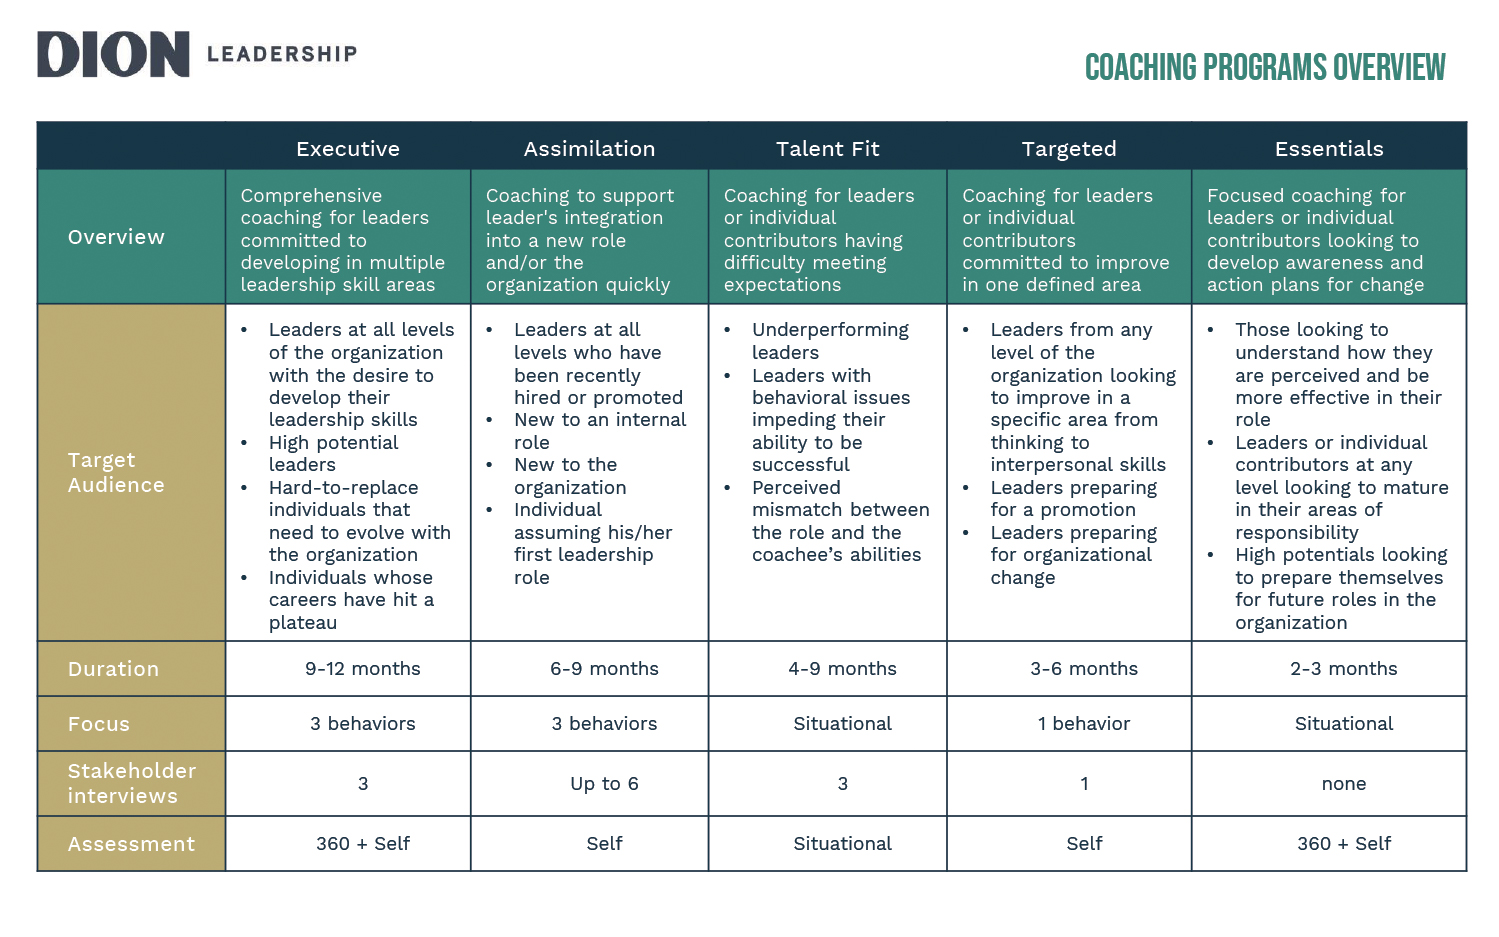 Dion Leadership Coaching Programs Overview